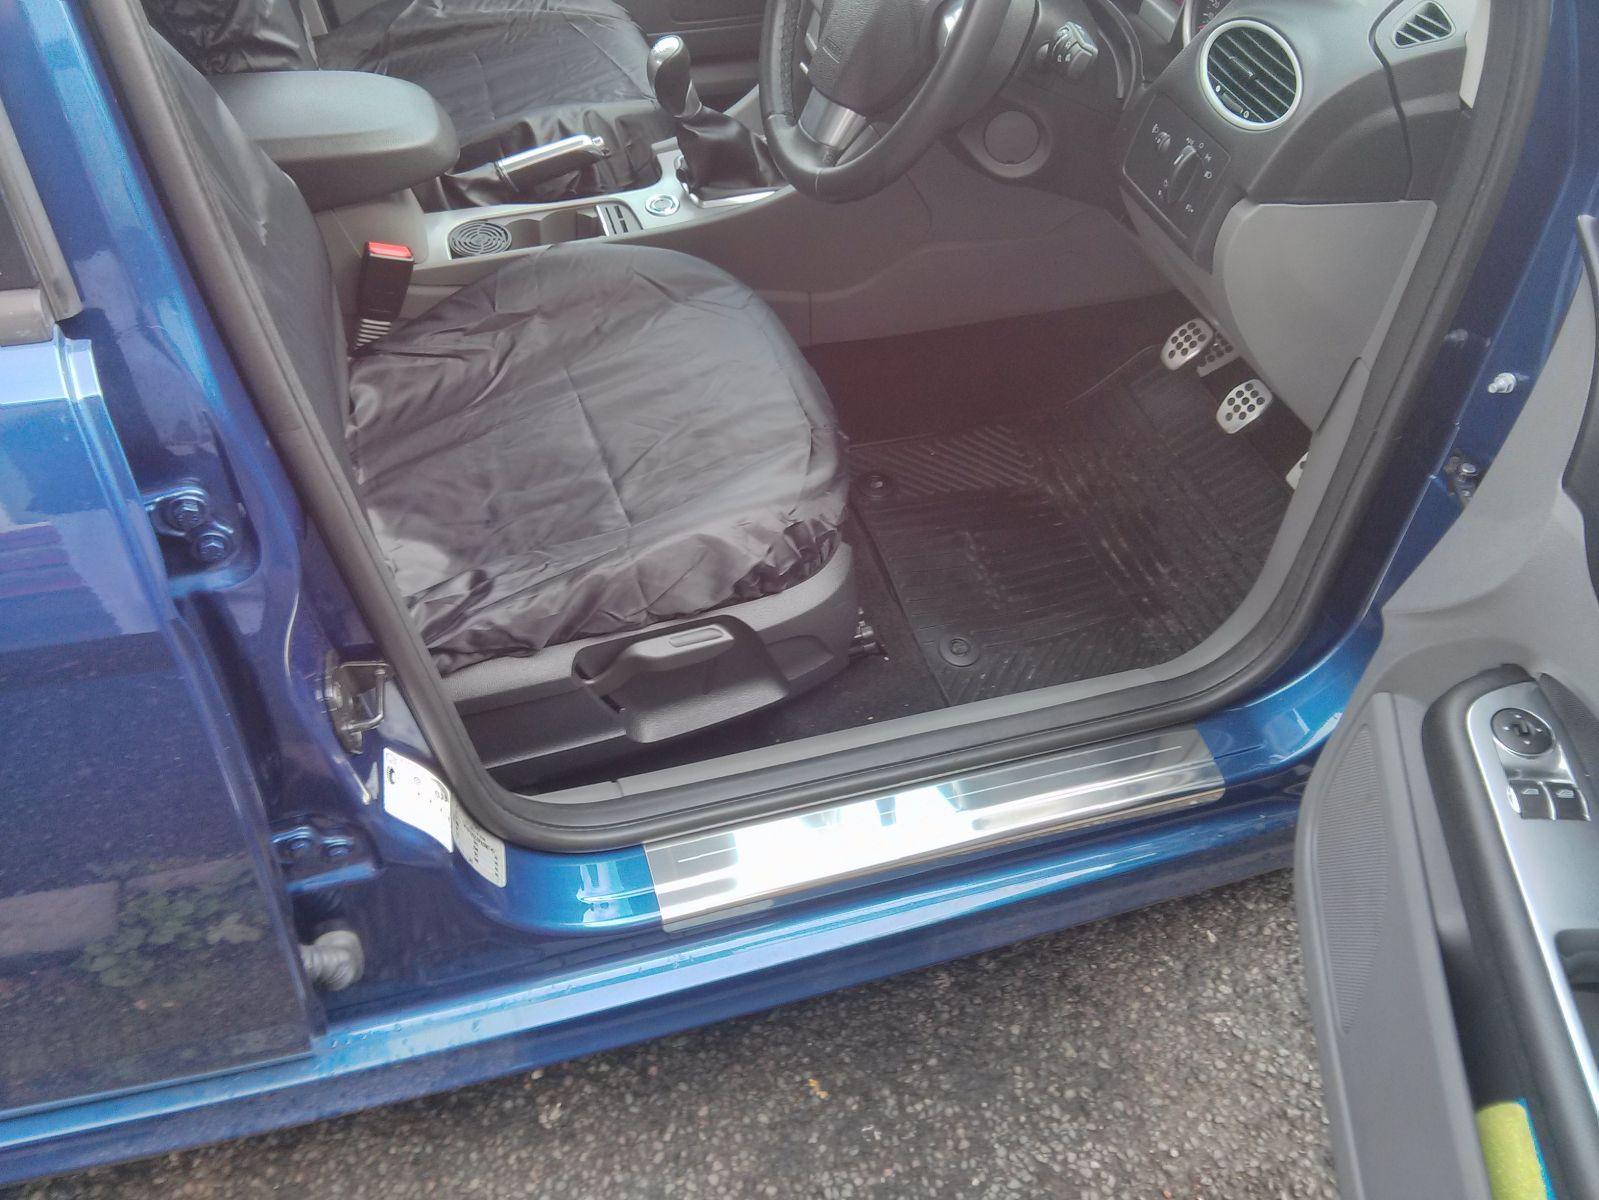 Lockwood kick plates and Genuine ford rubber mats